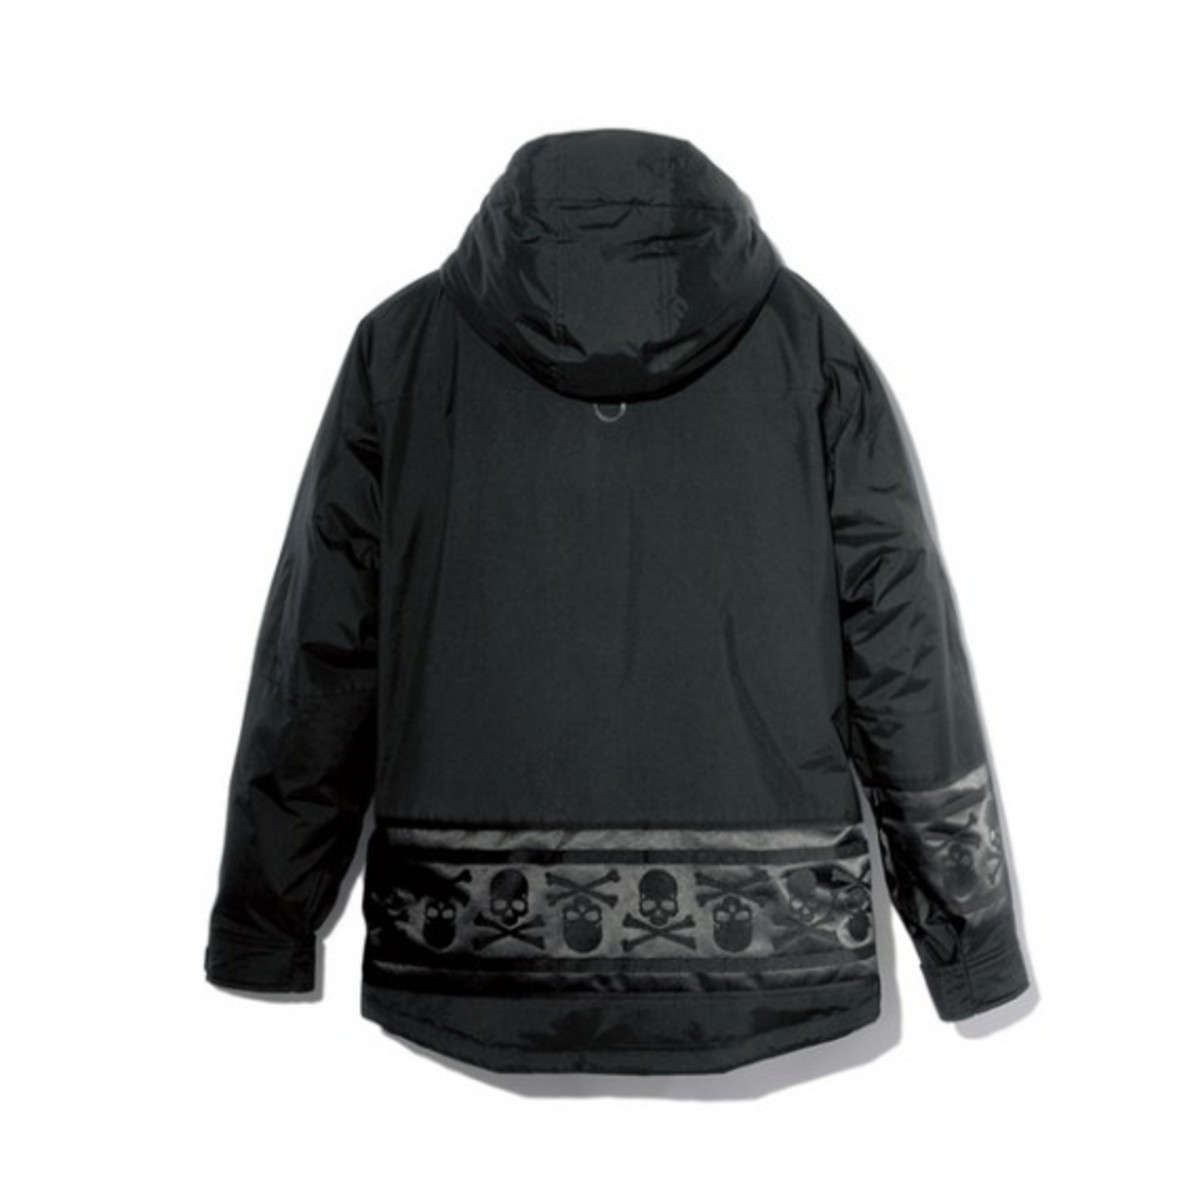 f-c-r-b-x-mastermind-japan-fallwinter-2012-outerwear-collection-10